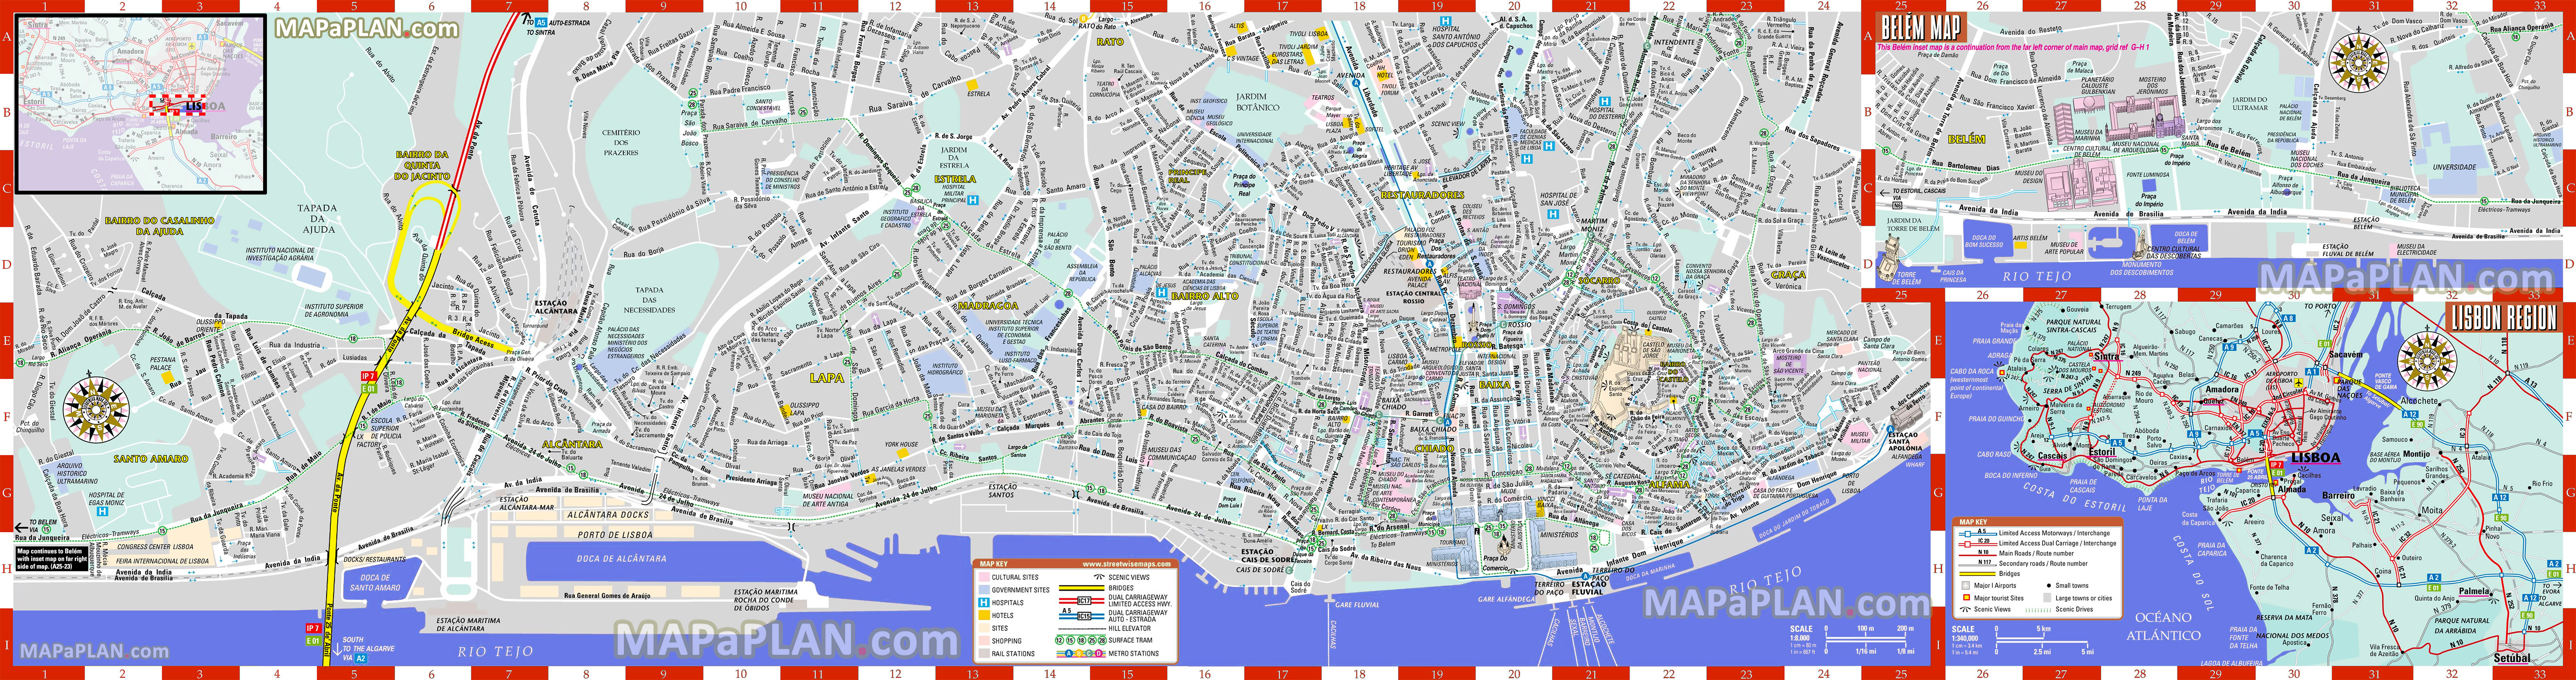 Printable Map Barcelona City Centre New Lisbon Maps Top Tourist Attractions Free Printable City Street Map